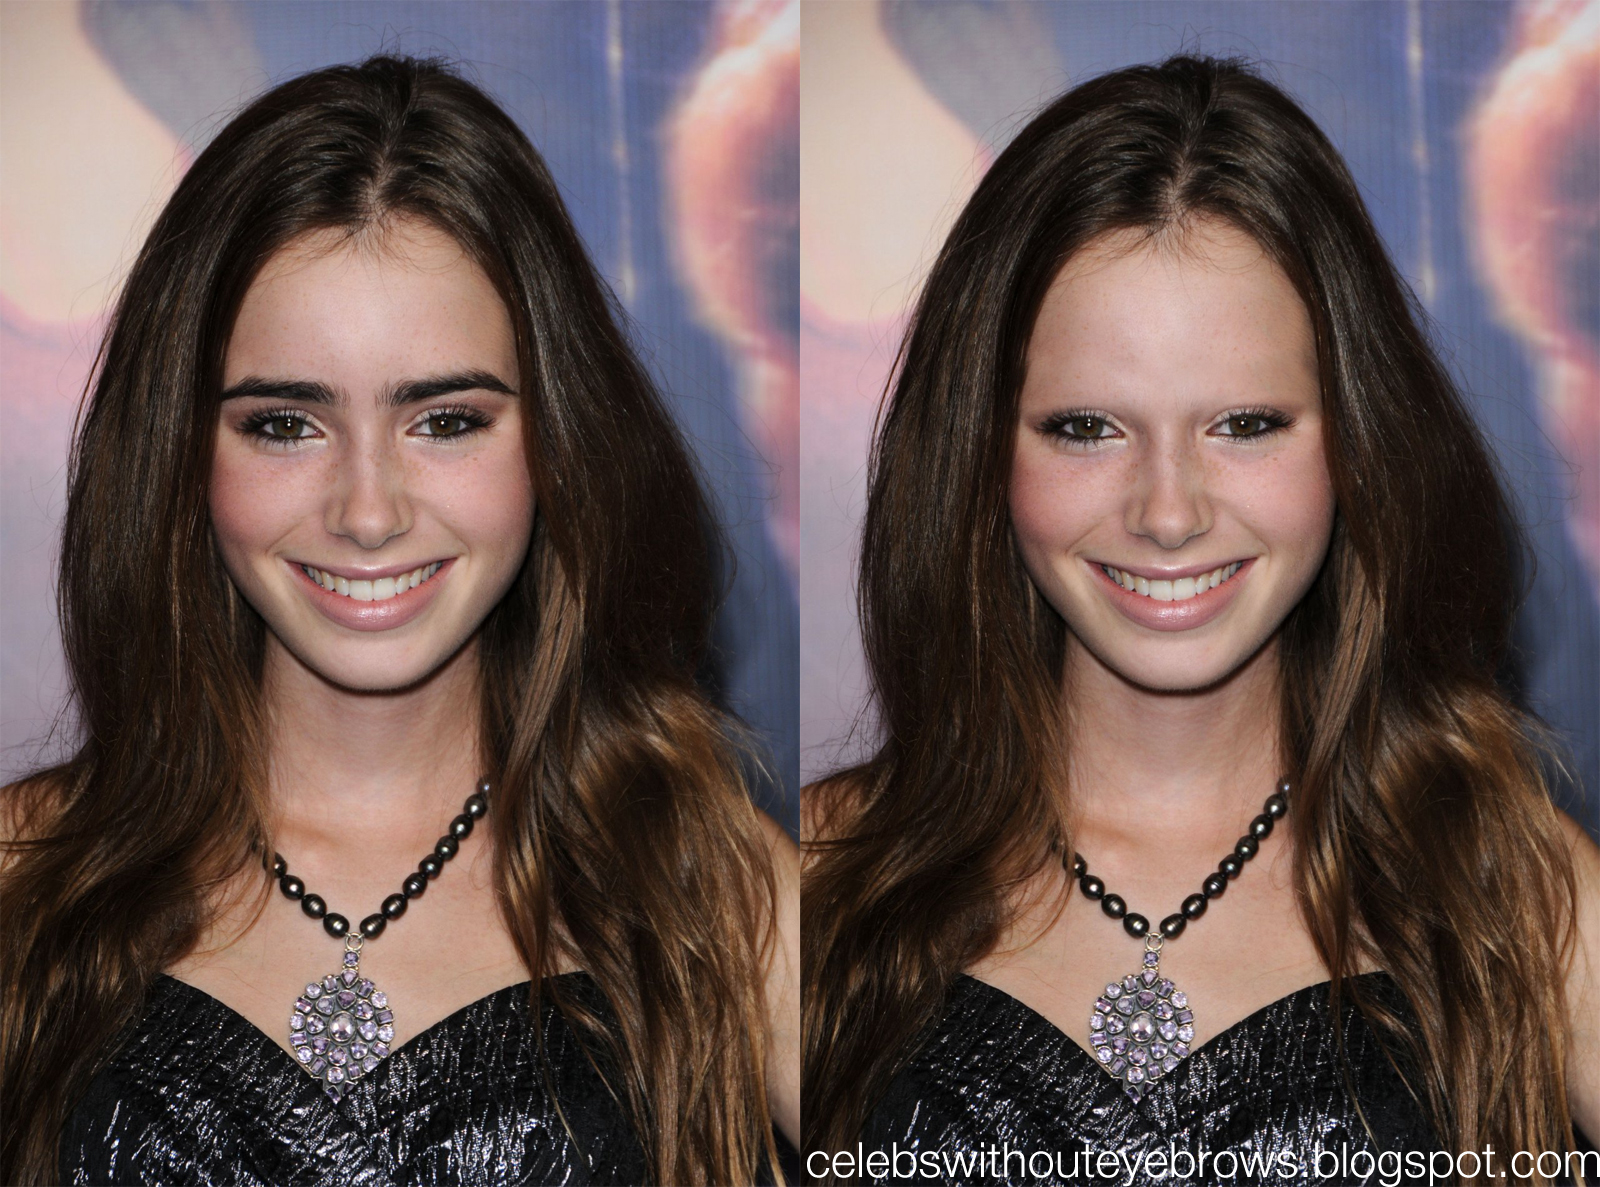 Celebs Without Eyebrows: Lily Collins